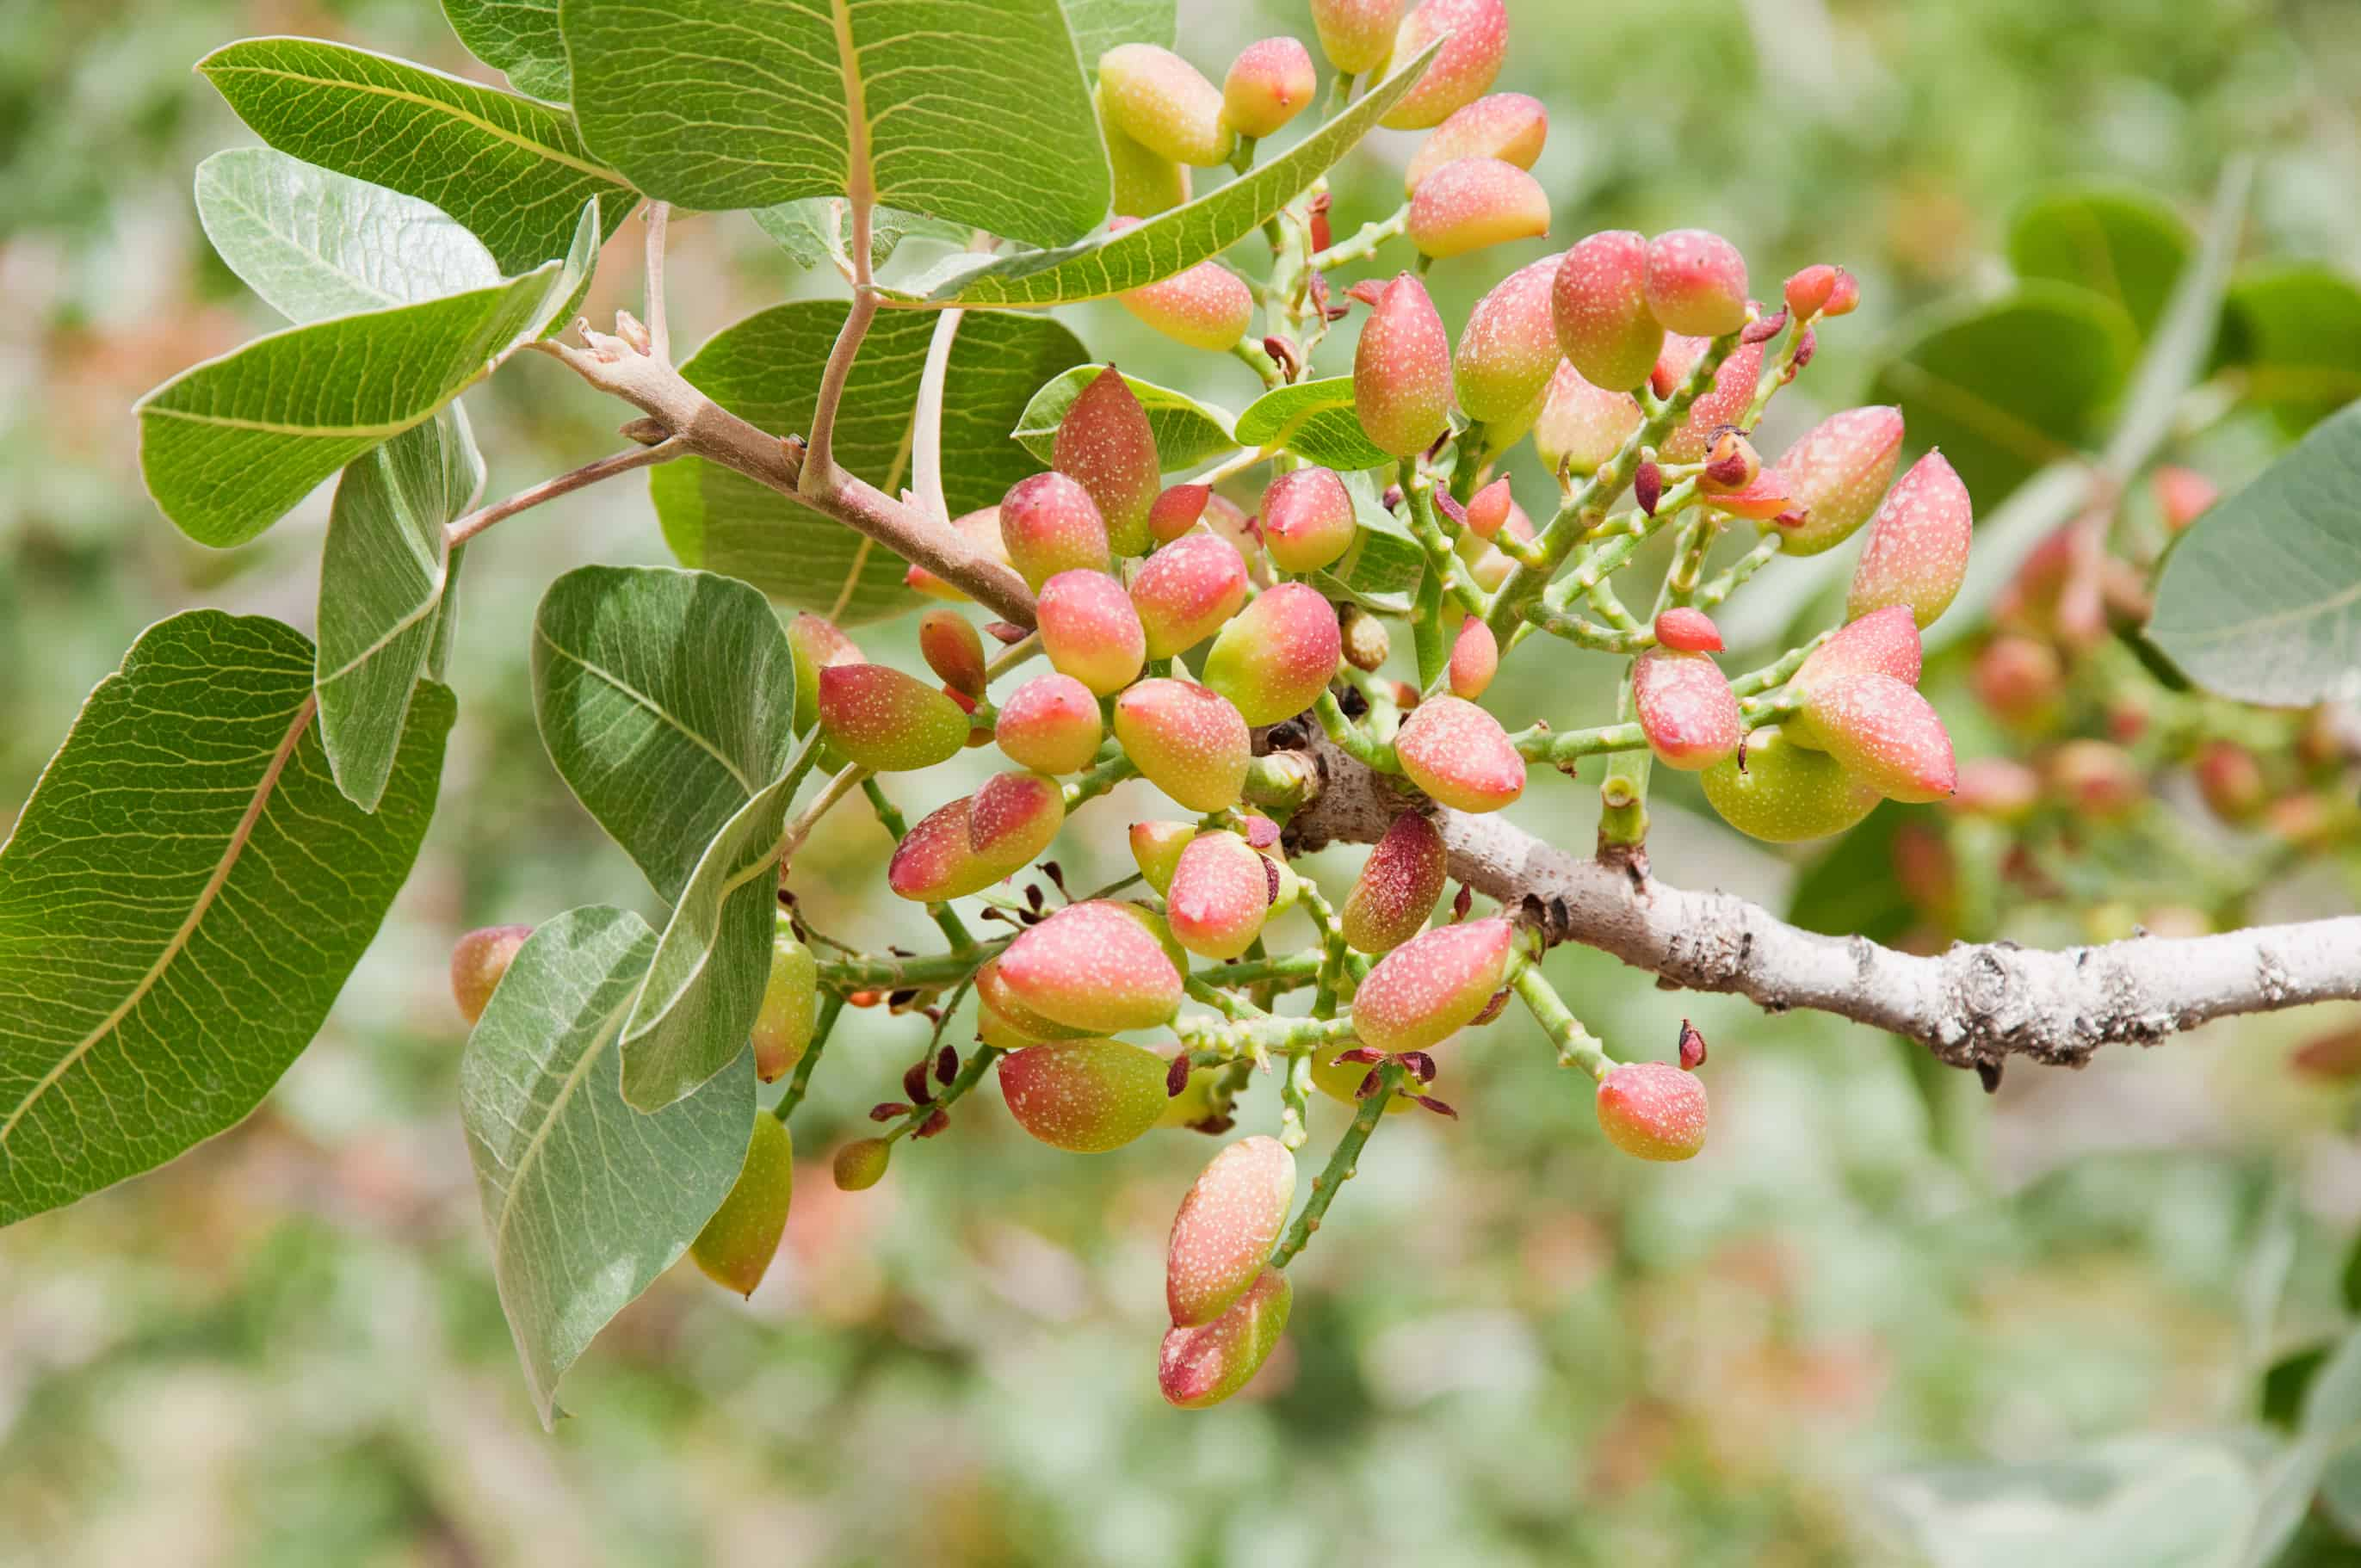 © Almaamor | Dreamstime.com - Pistachio nuts ripening on branch